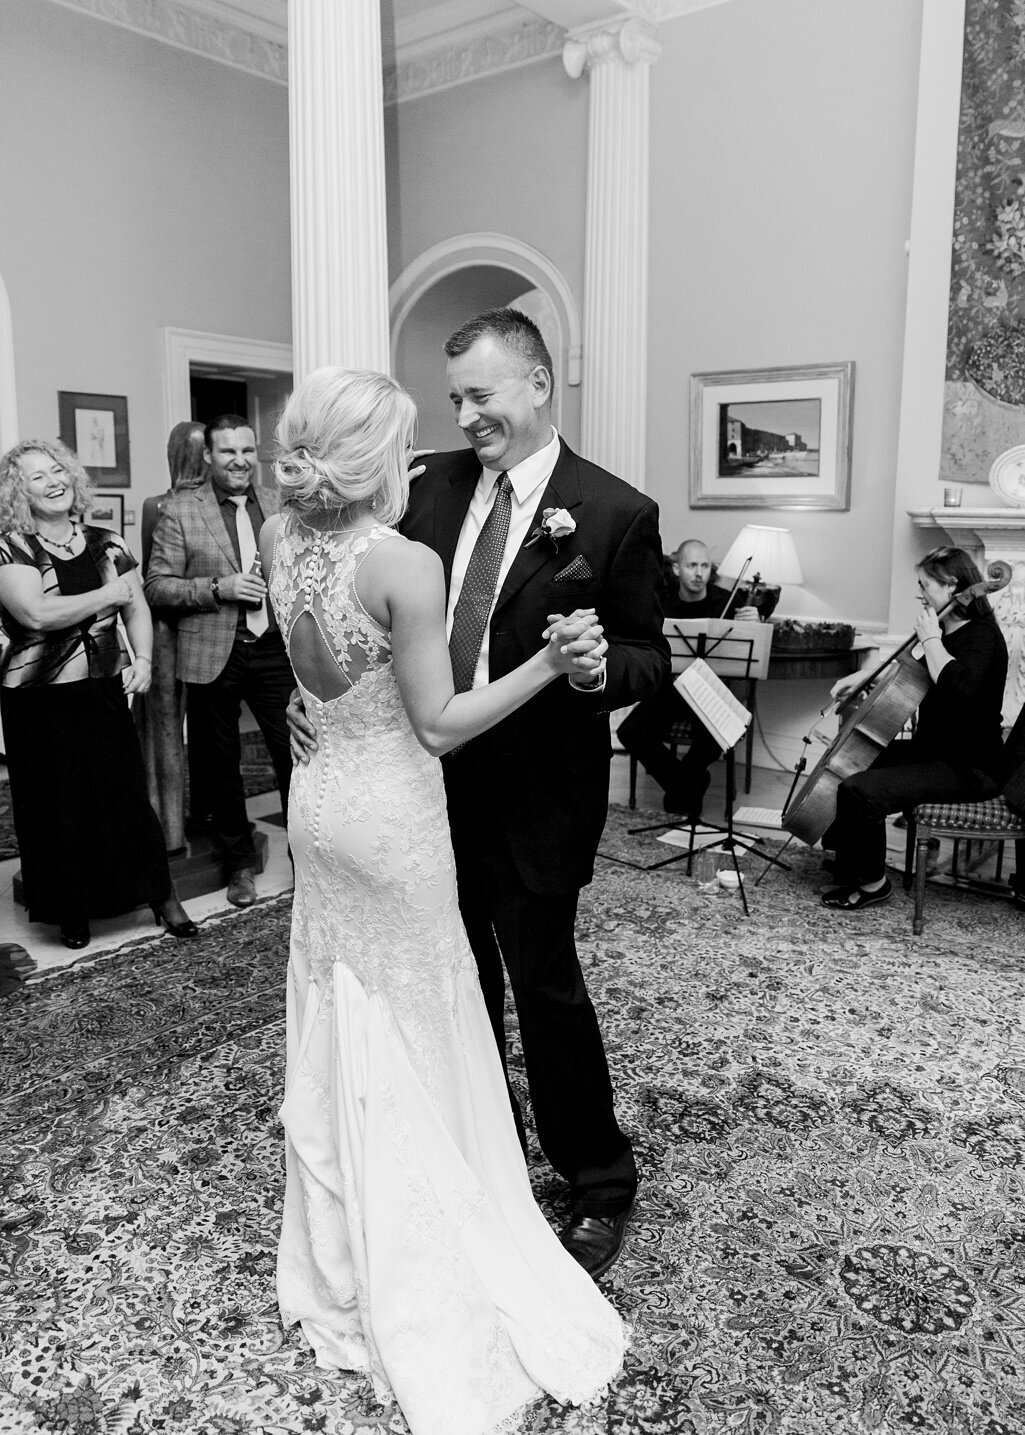 Jessie-Barksdale-Photography_K-Club-Ireland-Destination-Wedding-Photographer_0142